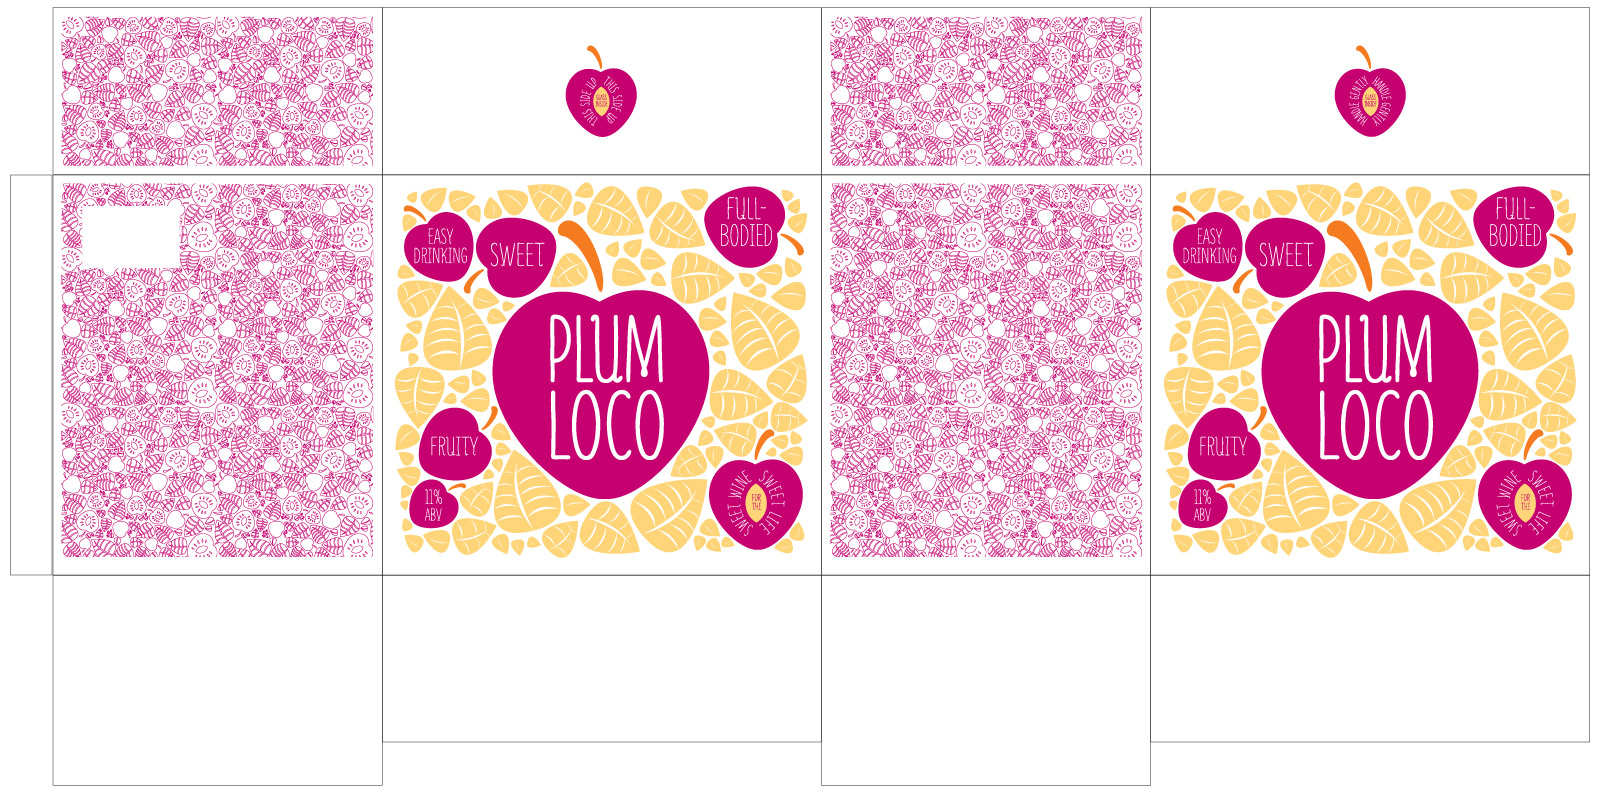 Plum Loco flat shipper design by Miranda Williams